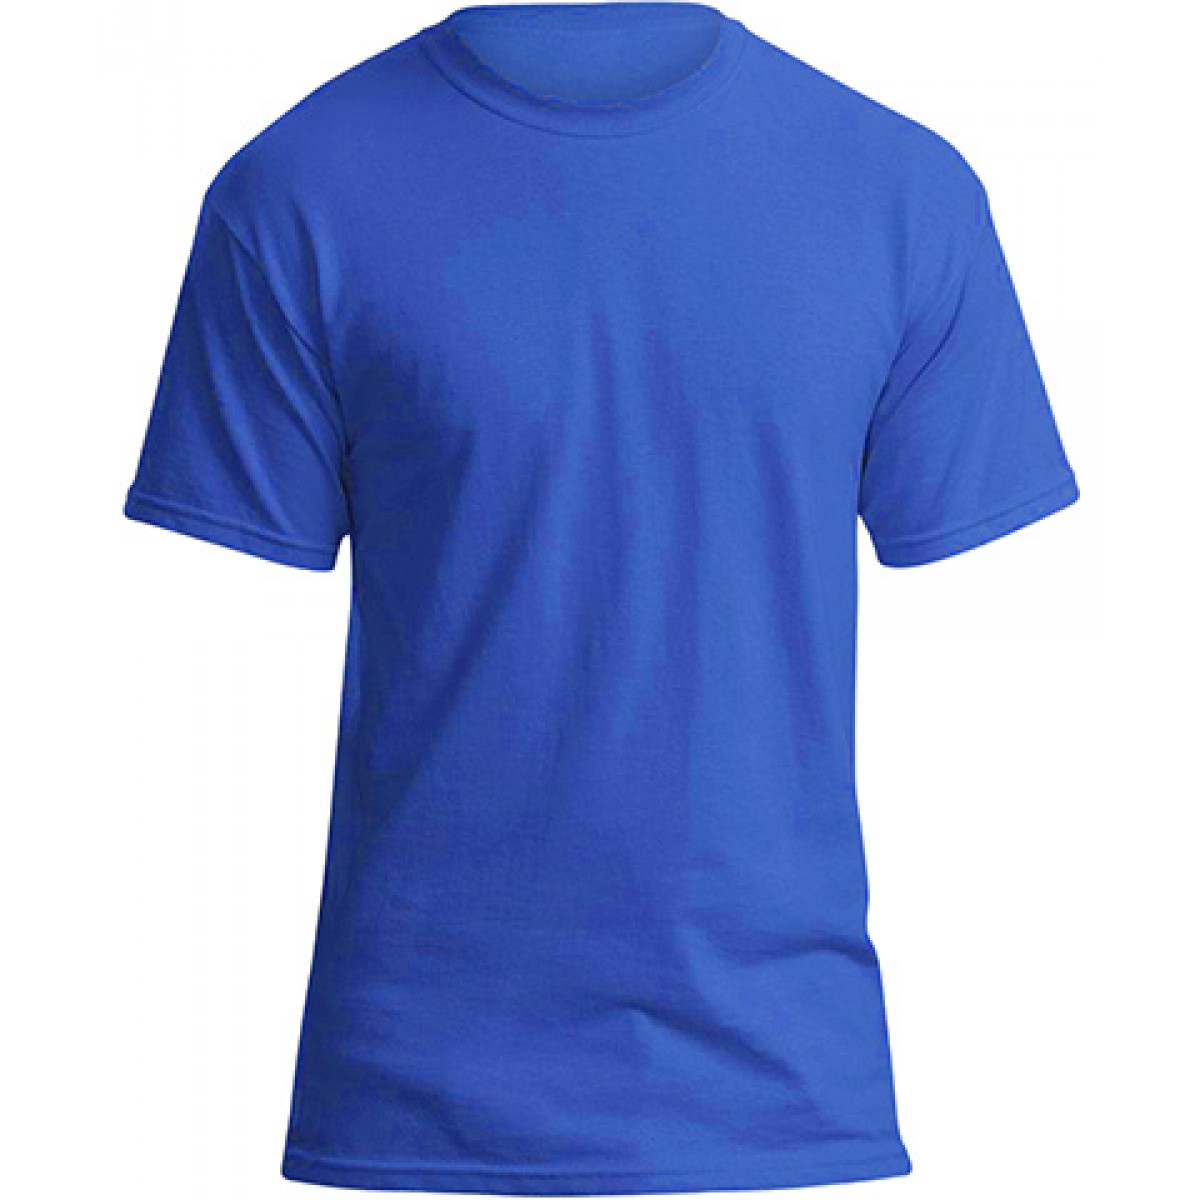 Soft 100% Cotton T-Shirt-Royal Blue-S